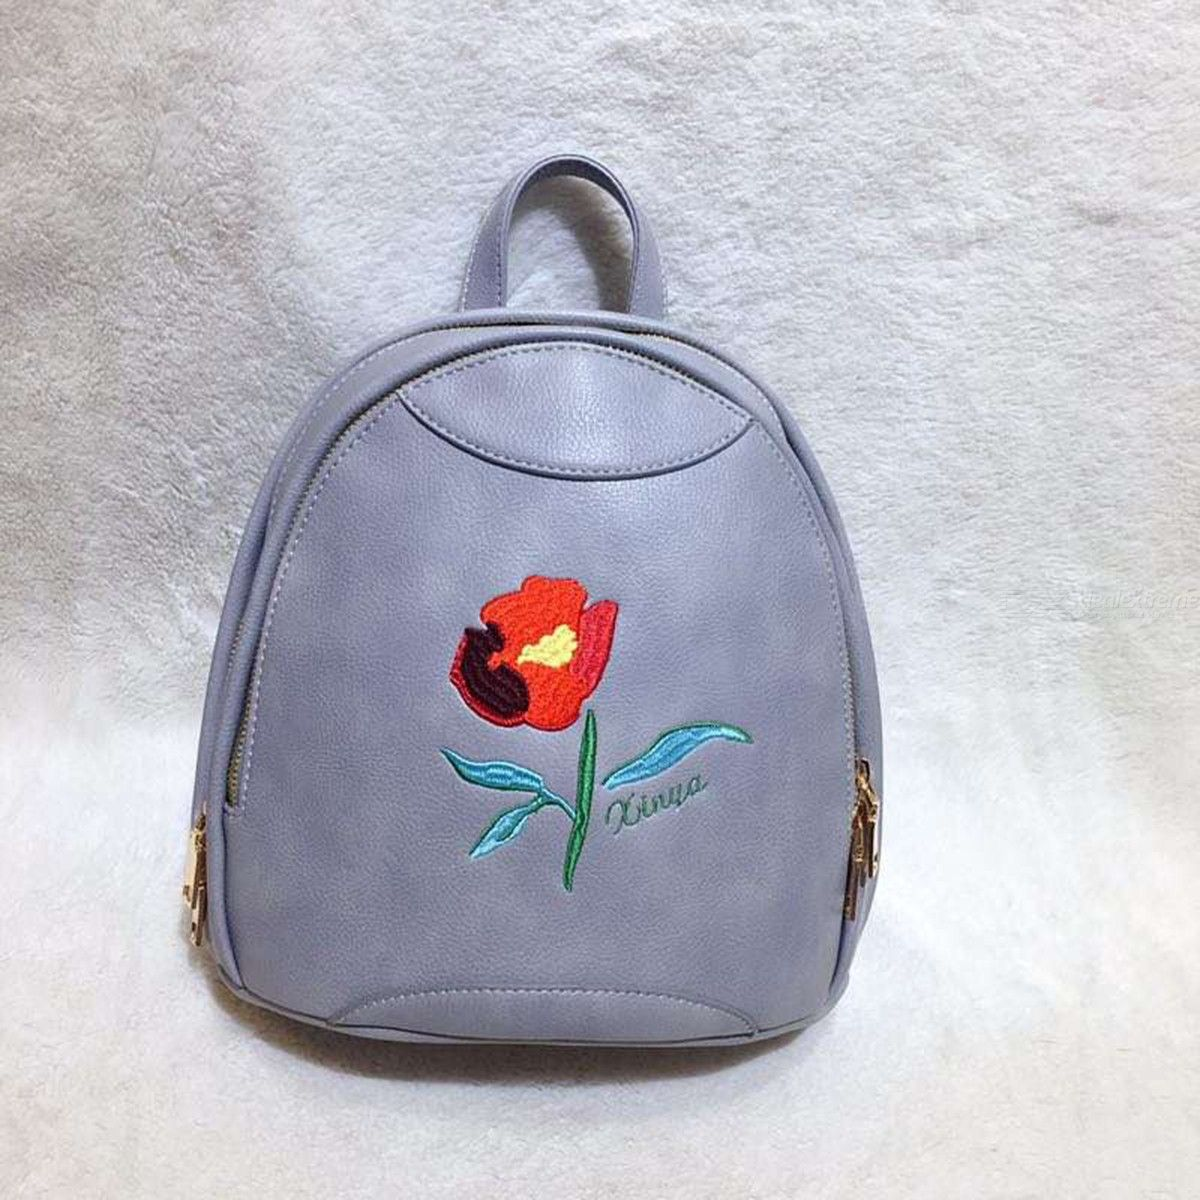 a50174aff341 Fashionable Adjustable Backpack Casual Portable Shoulder Bag With  Embroidery Pattern For Teenage Girls Ladies